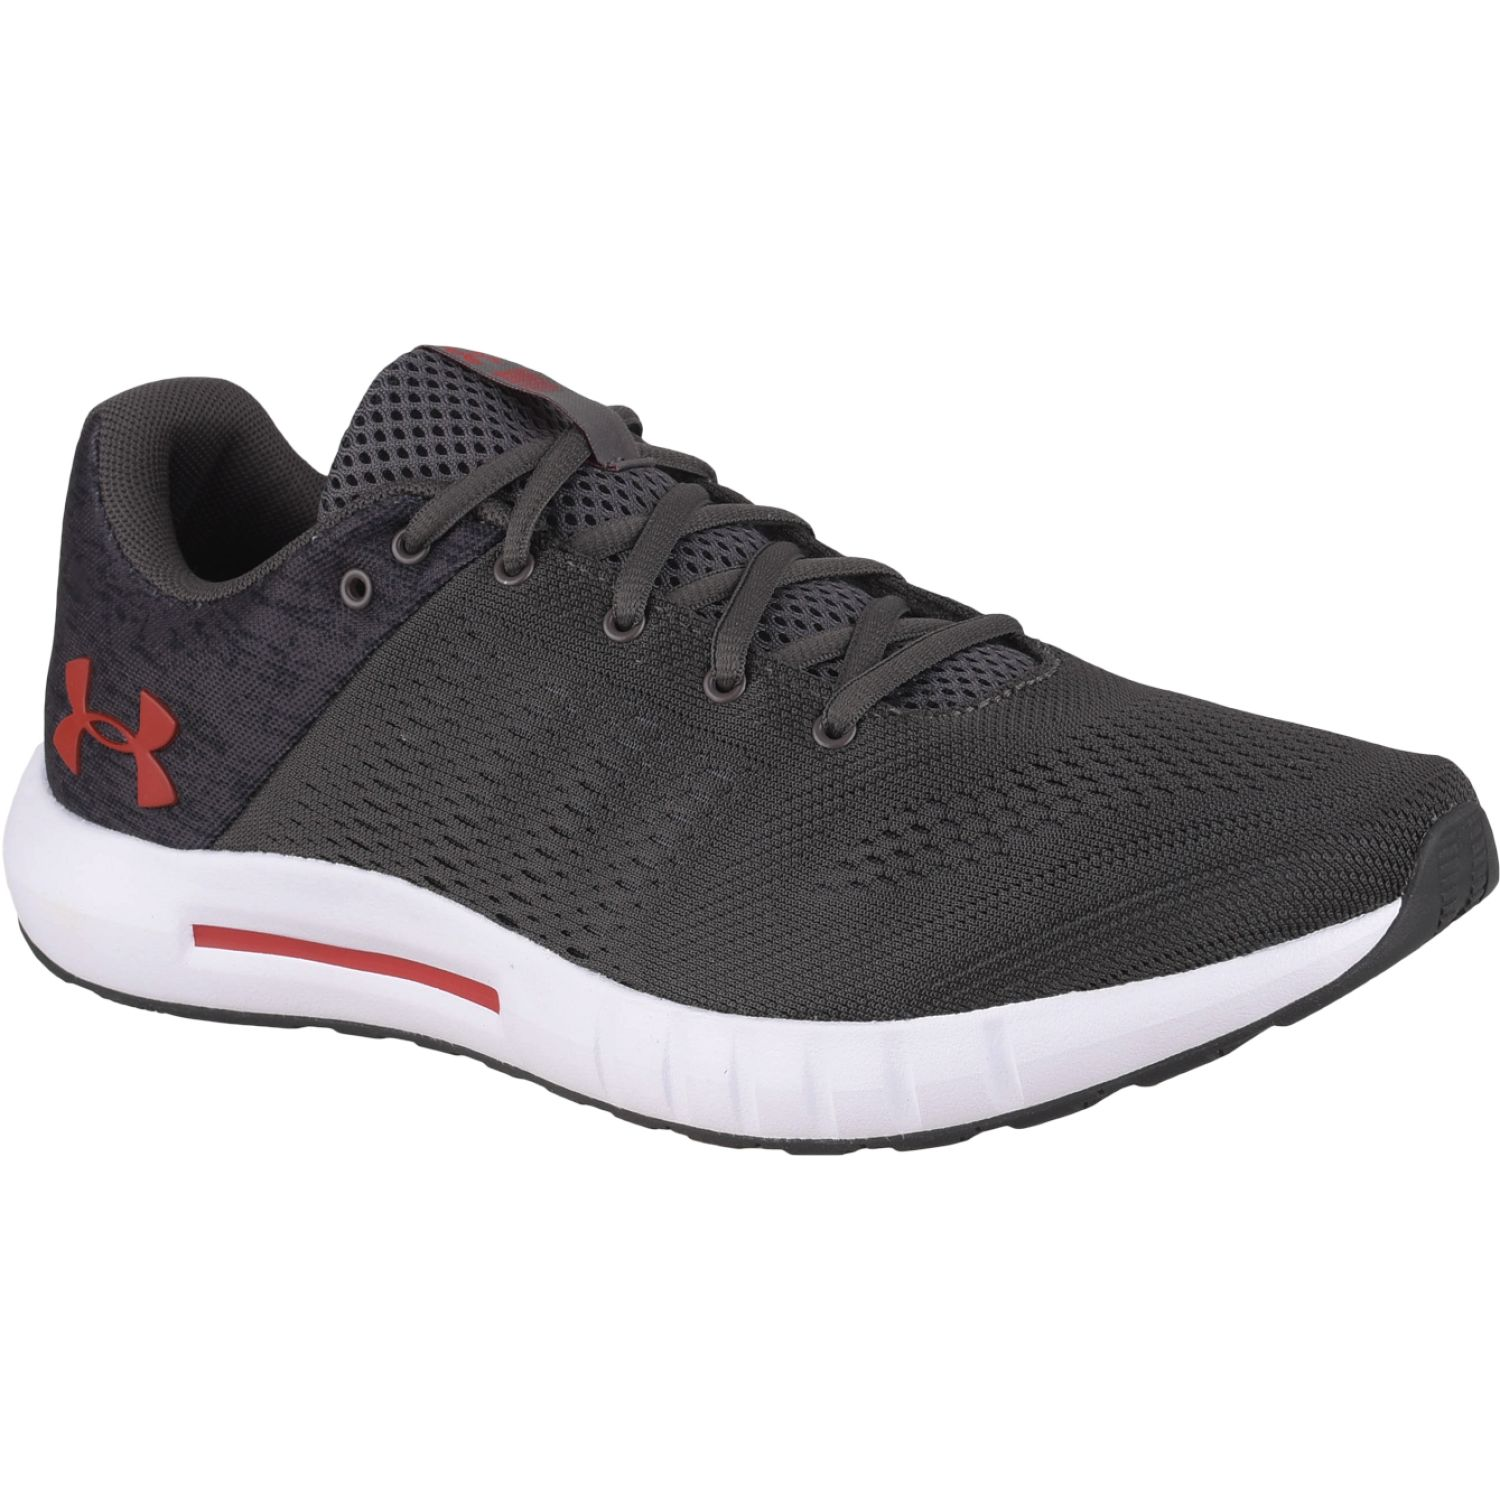 Under Armour ua micro g pursuit fiber opt-gry Negro / blanco Running en pista